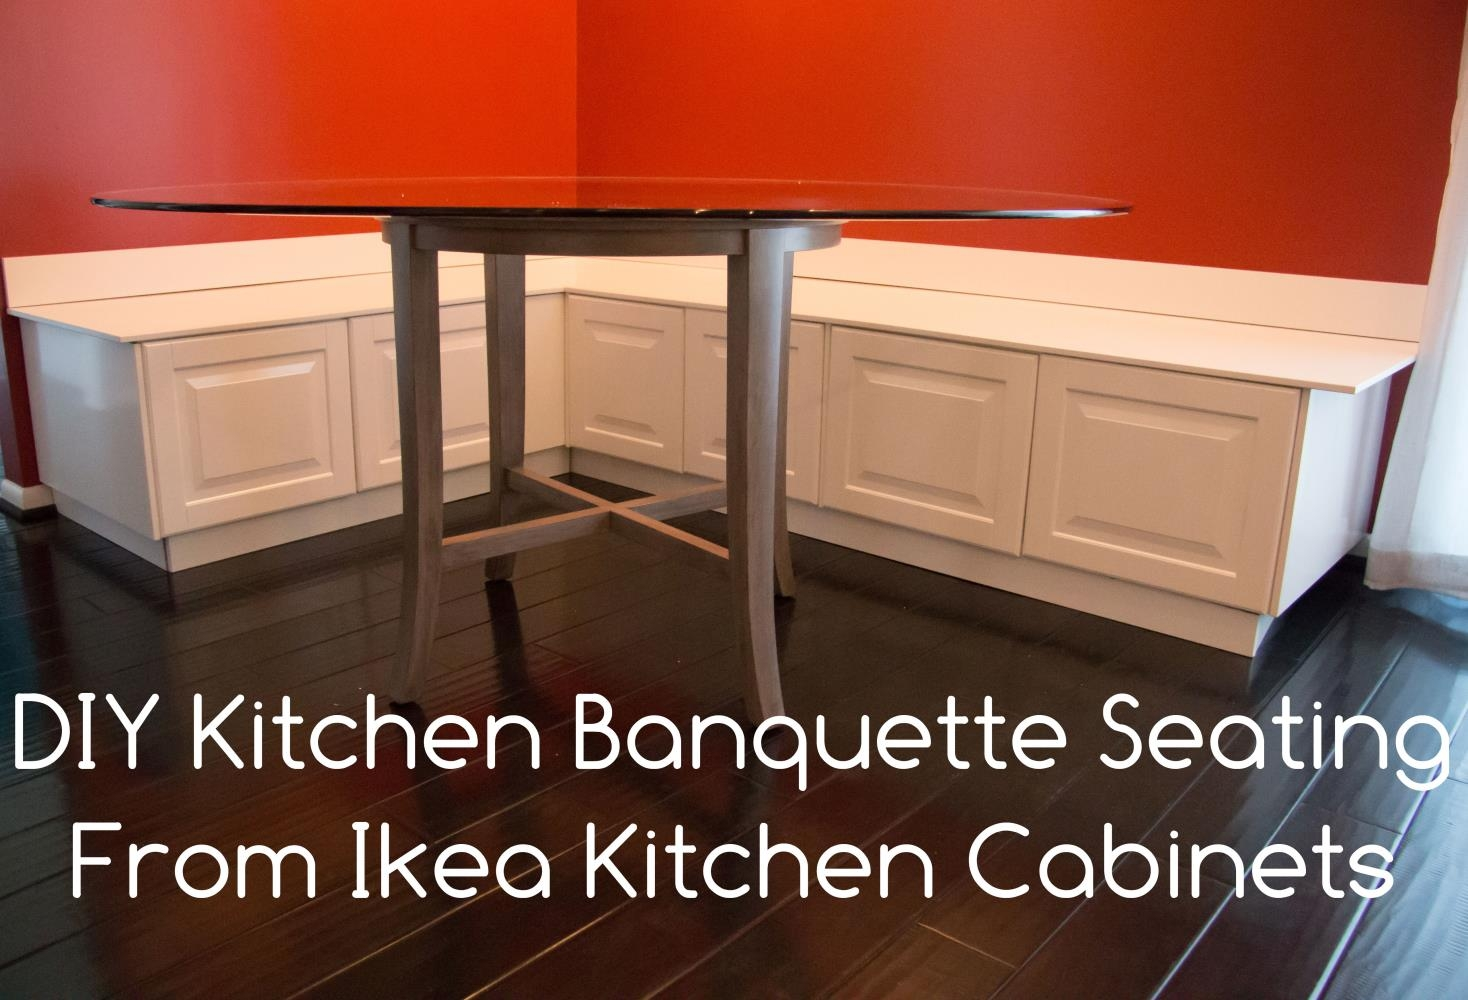 How To Build A Corner Kitchen Cabinet Diy Kitchen Banquette Bench Using Ikea Cabinets Ikea Hacks